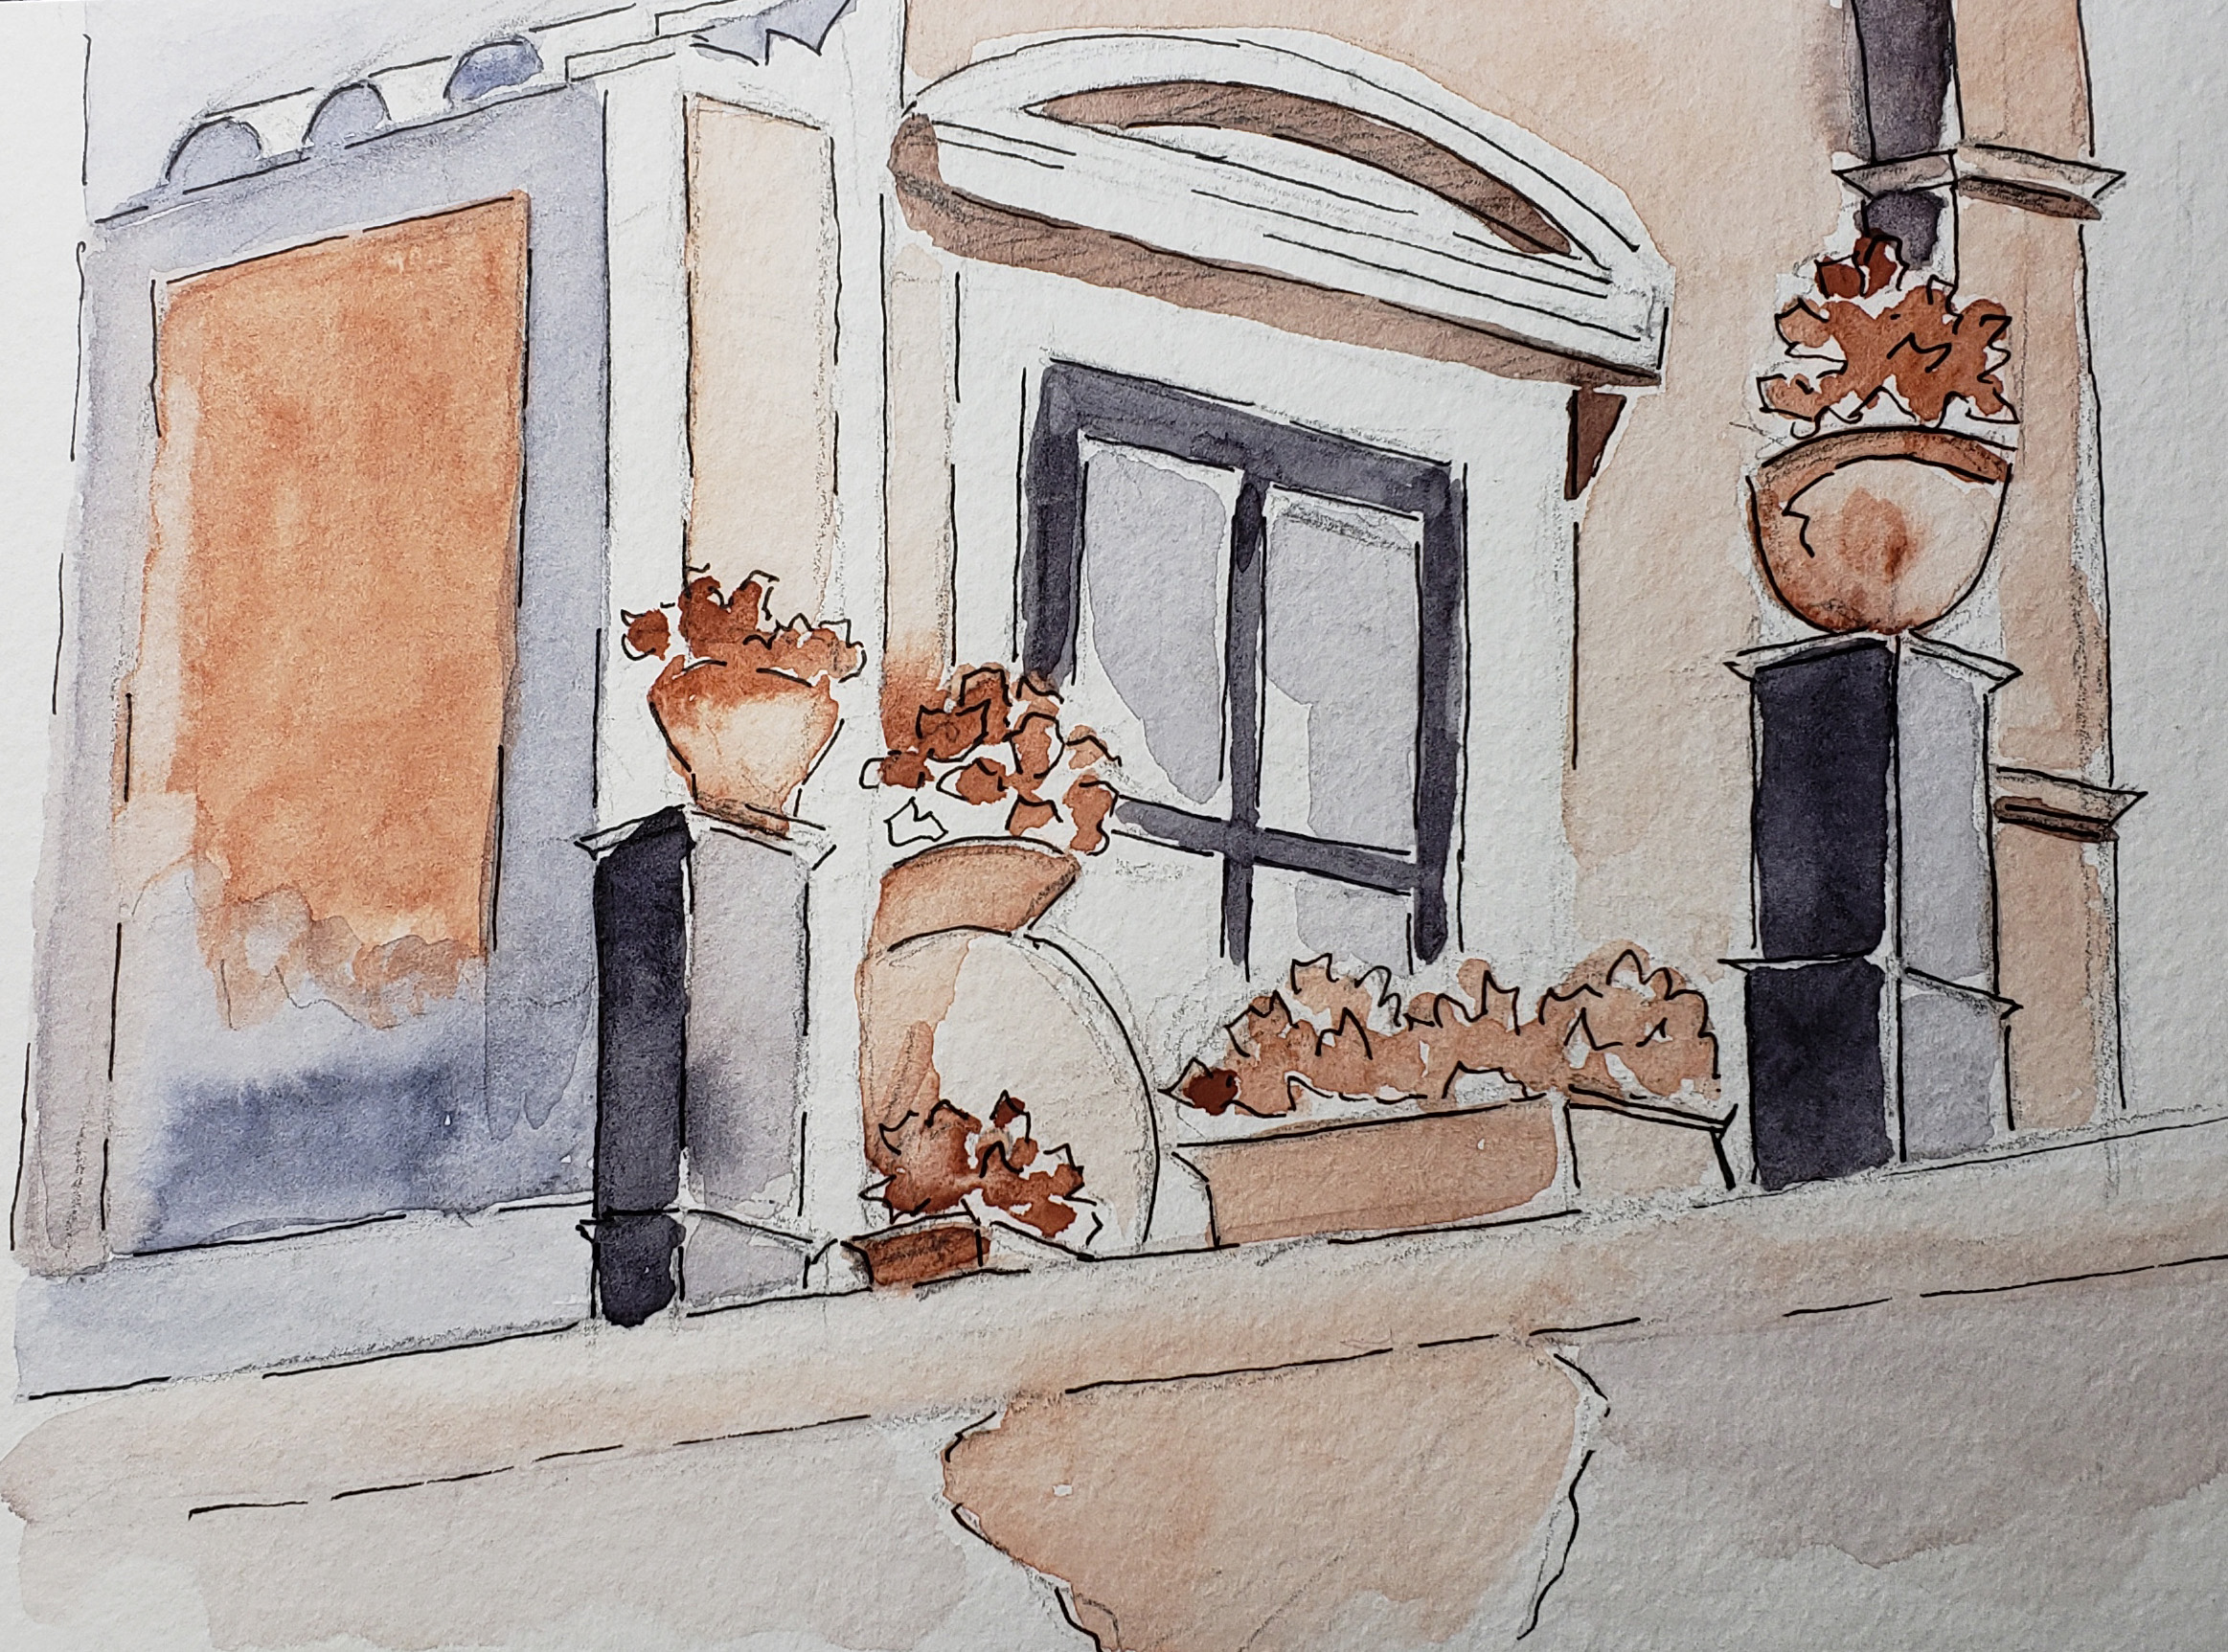 Ravello Balcony from my Sketchbook